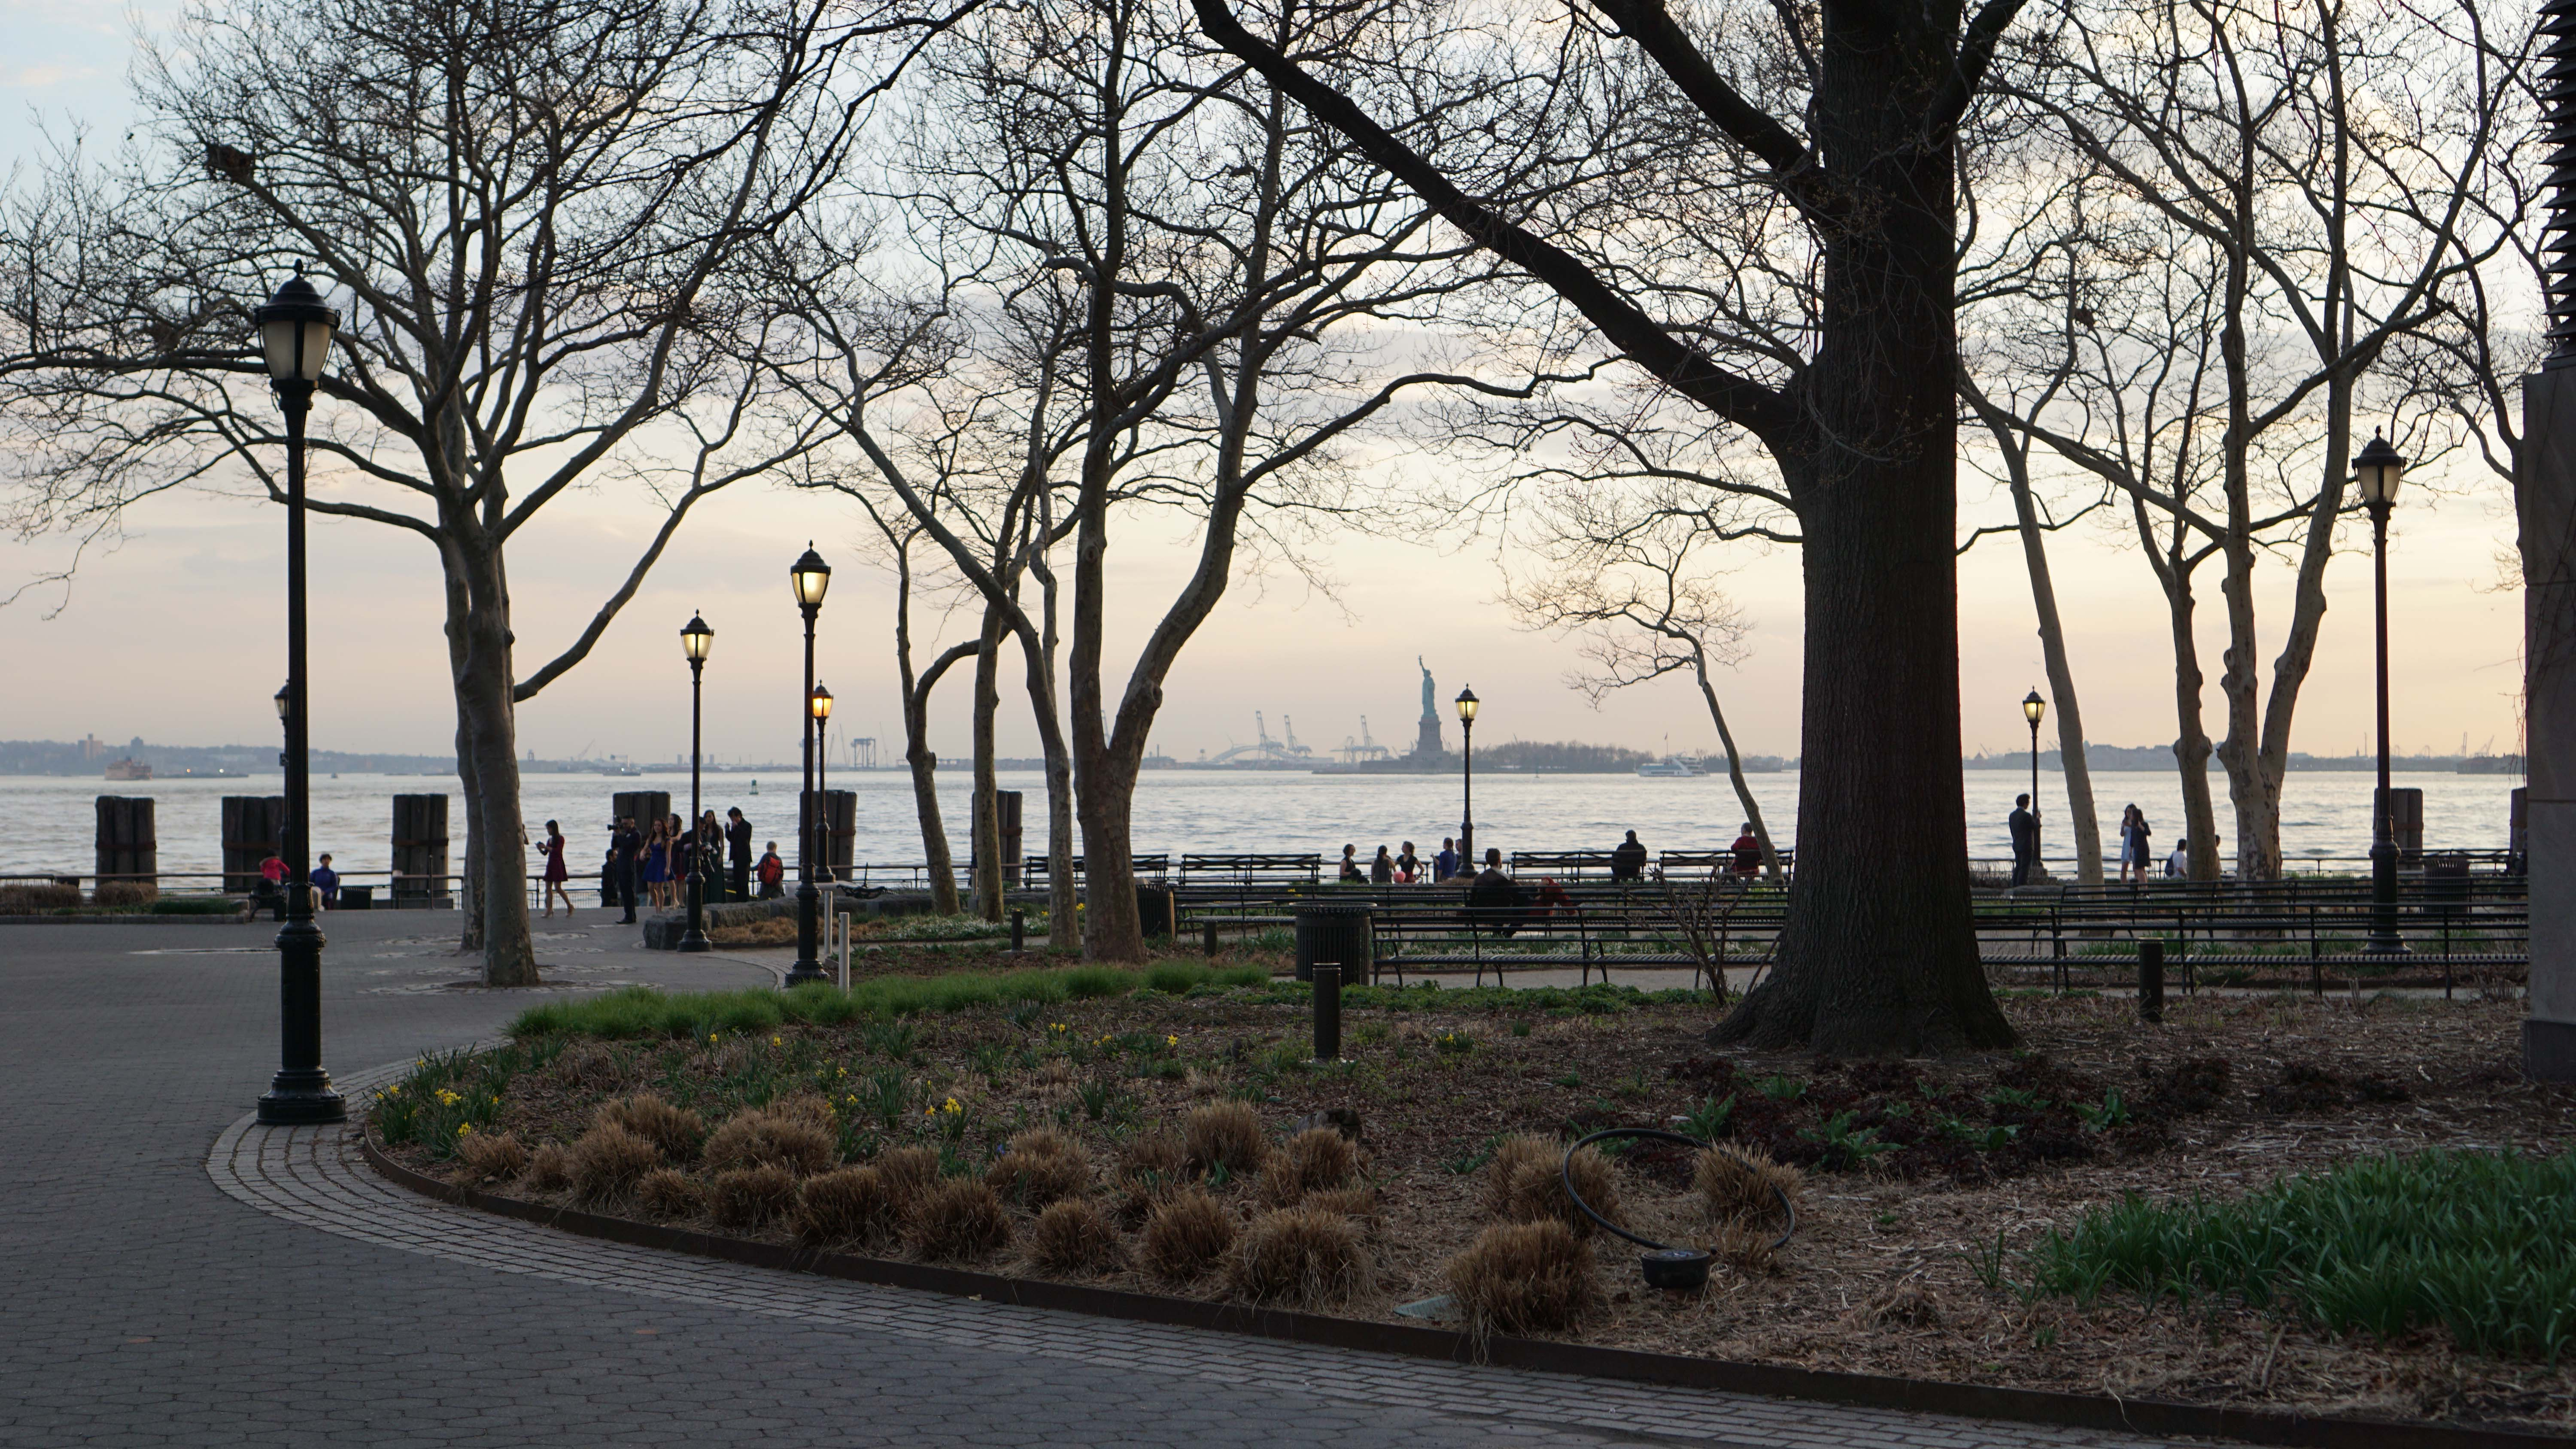 Battery Park Conservancy open 11